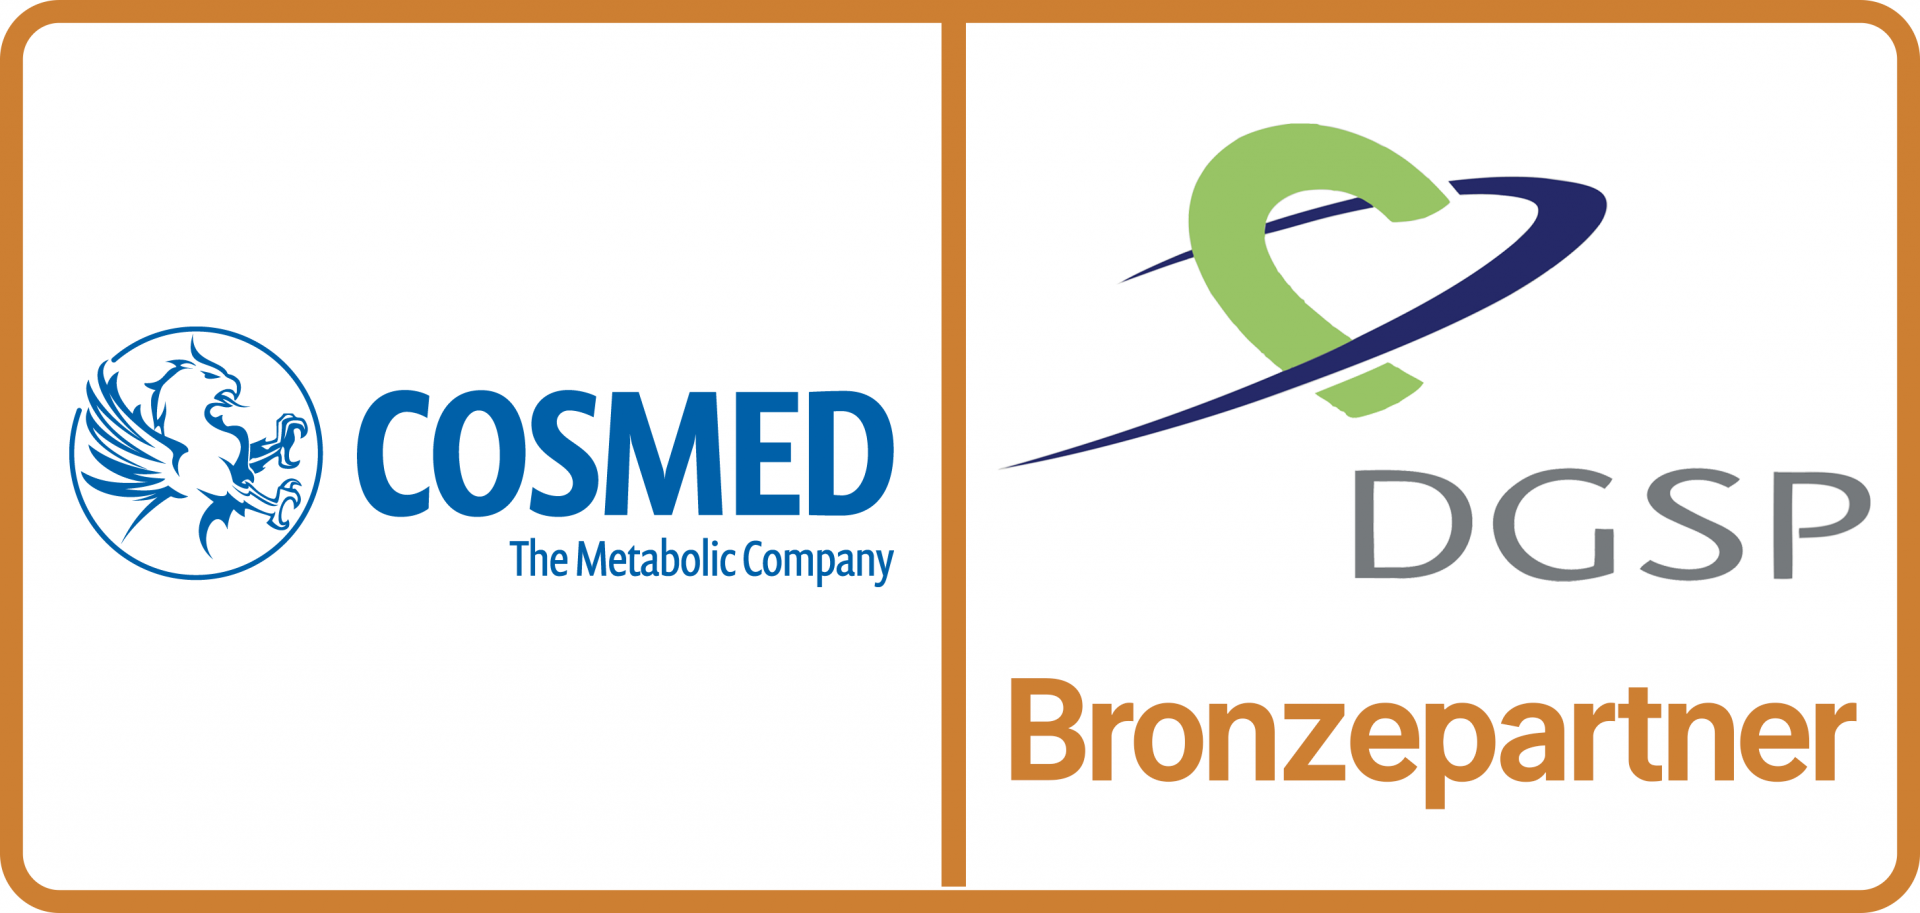 Bronzepartner COSMED — The metabolic company